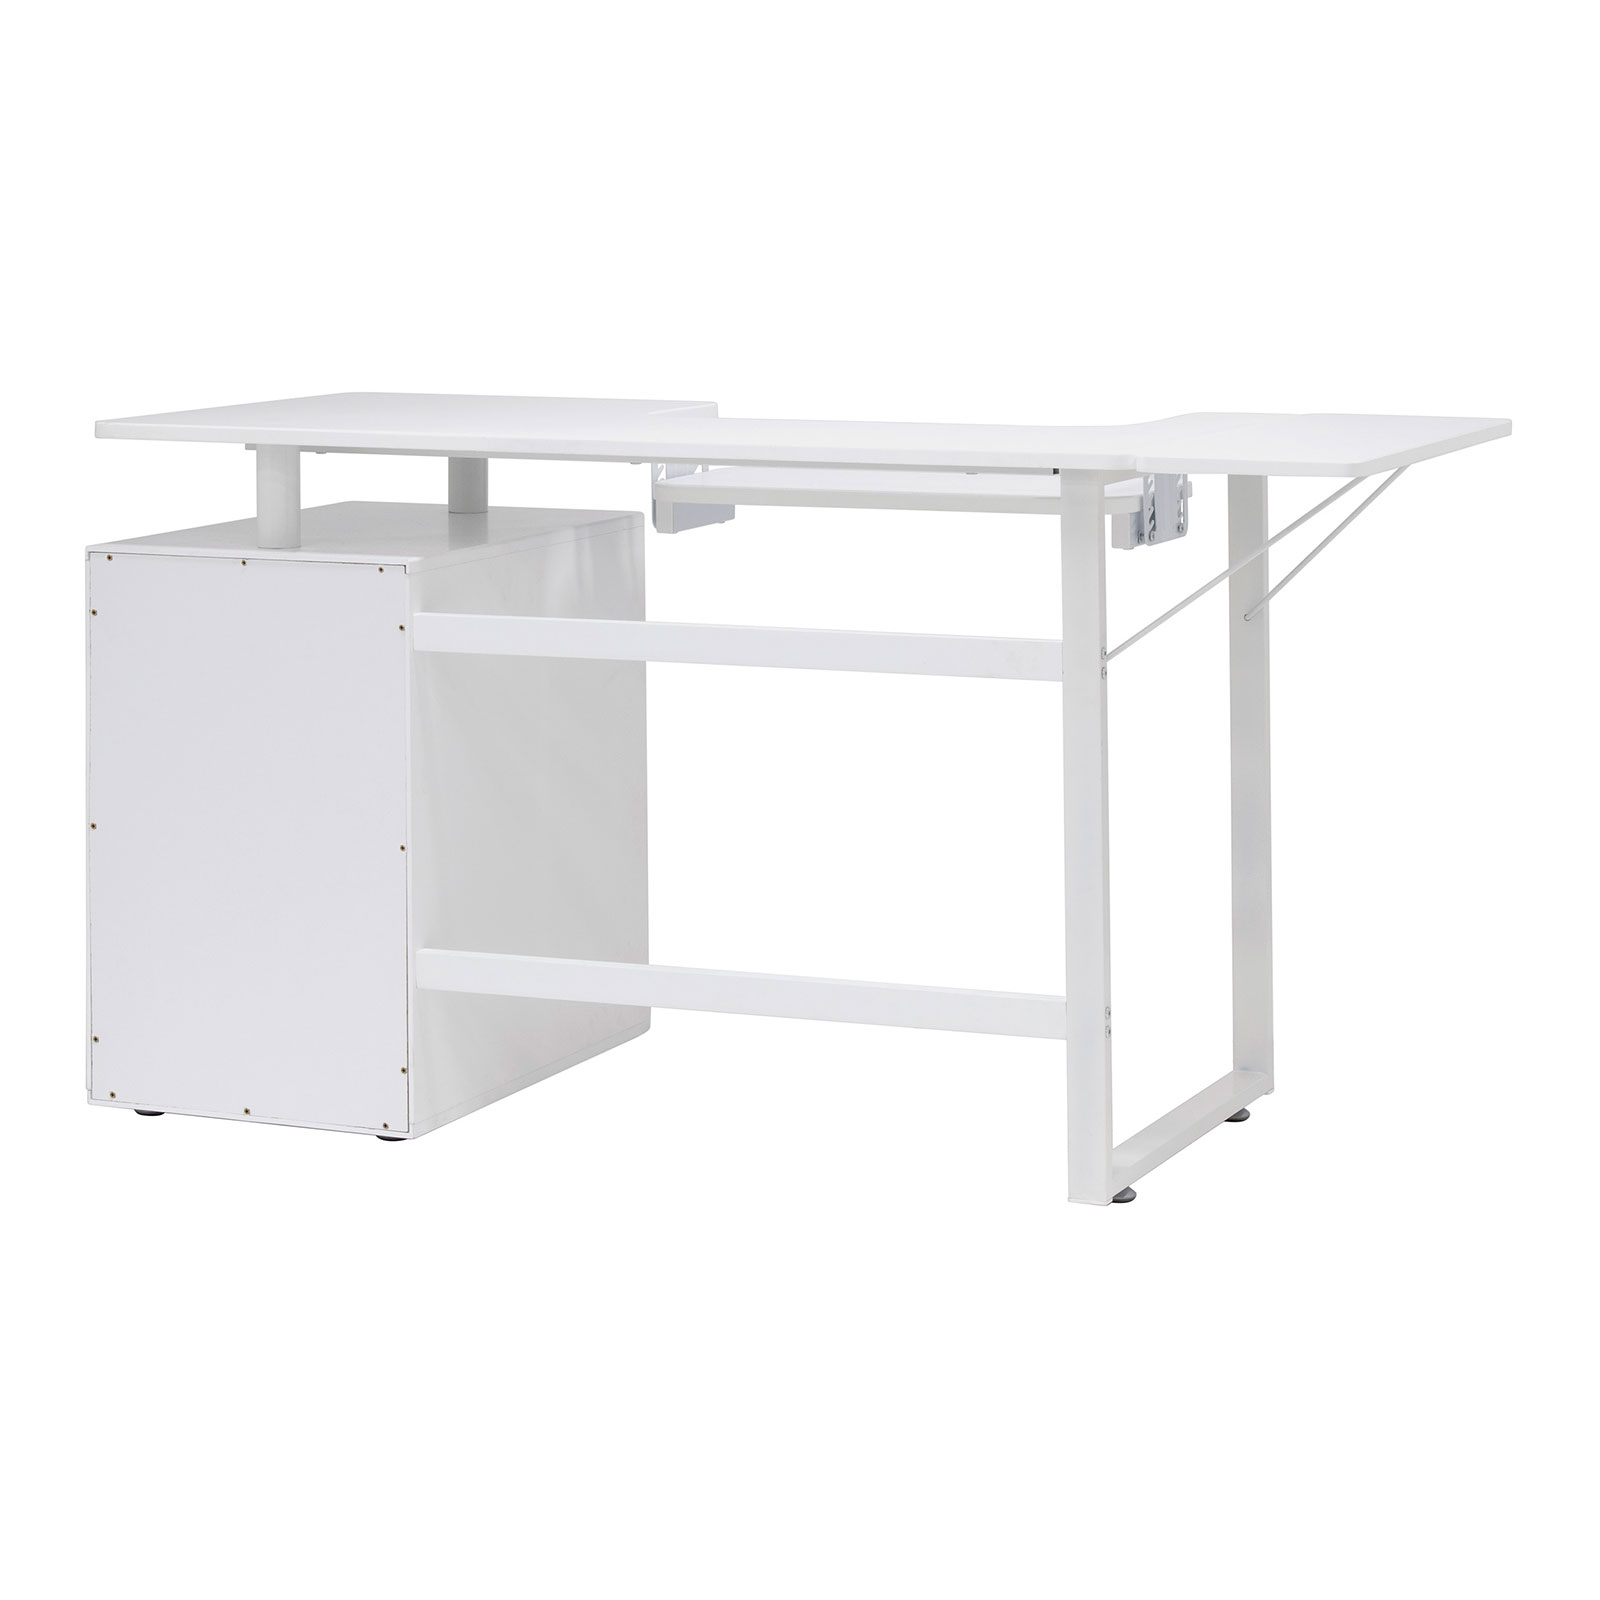 13397-Pro-Line-Sewing-Table-back